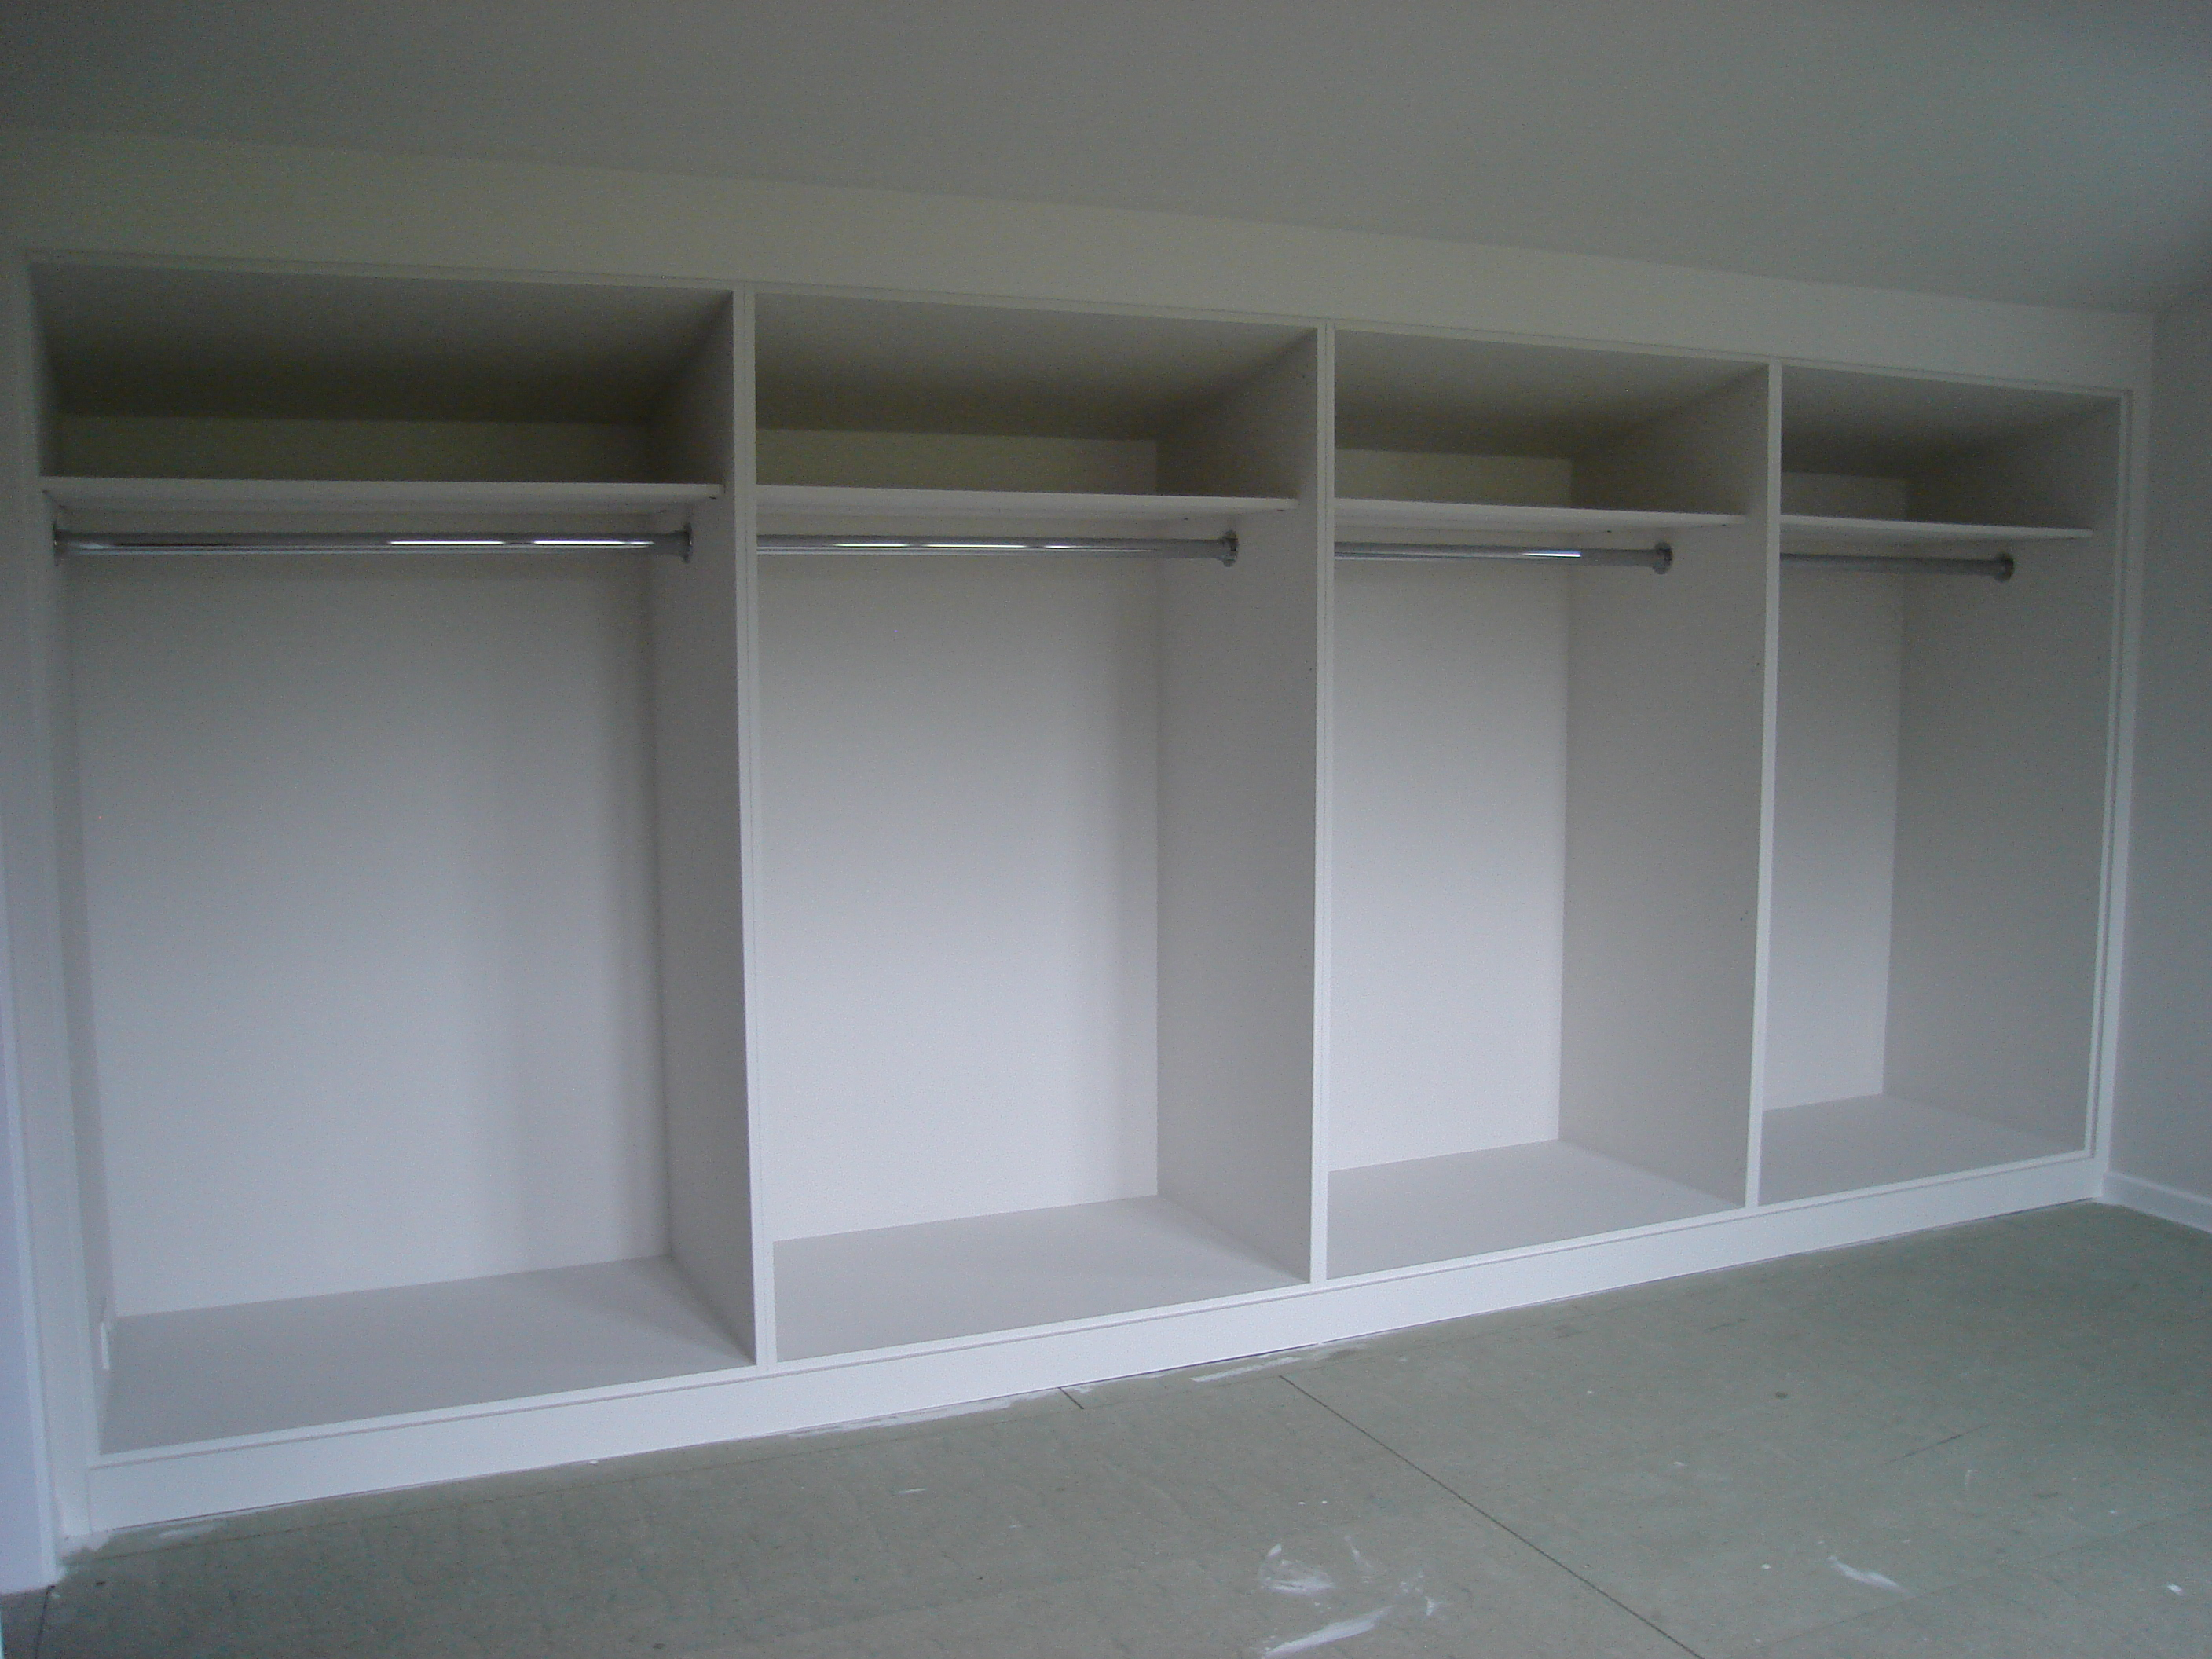 Diy wardrobes information centre online wardrobe design for Bedroom built in wardrobe designs